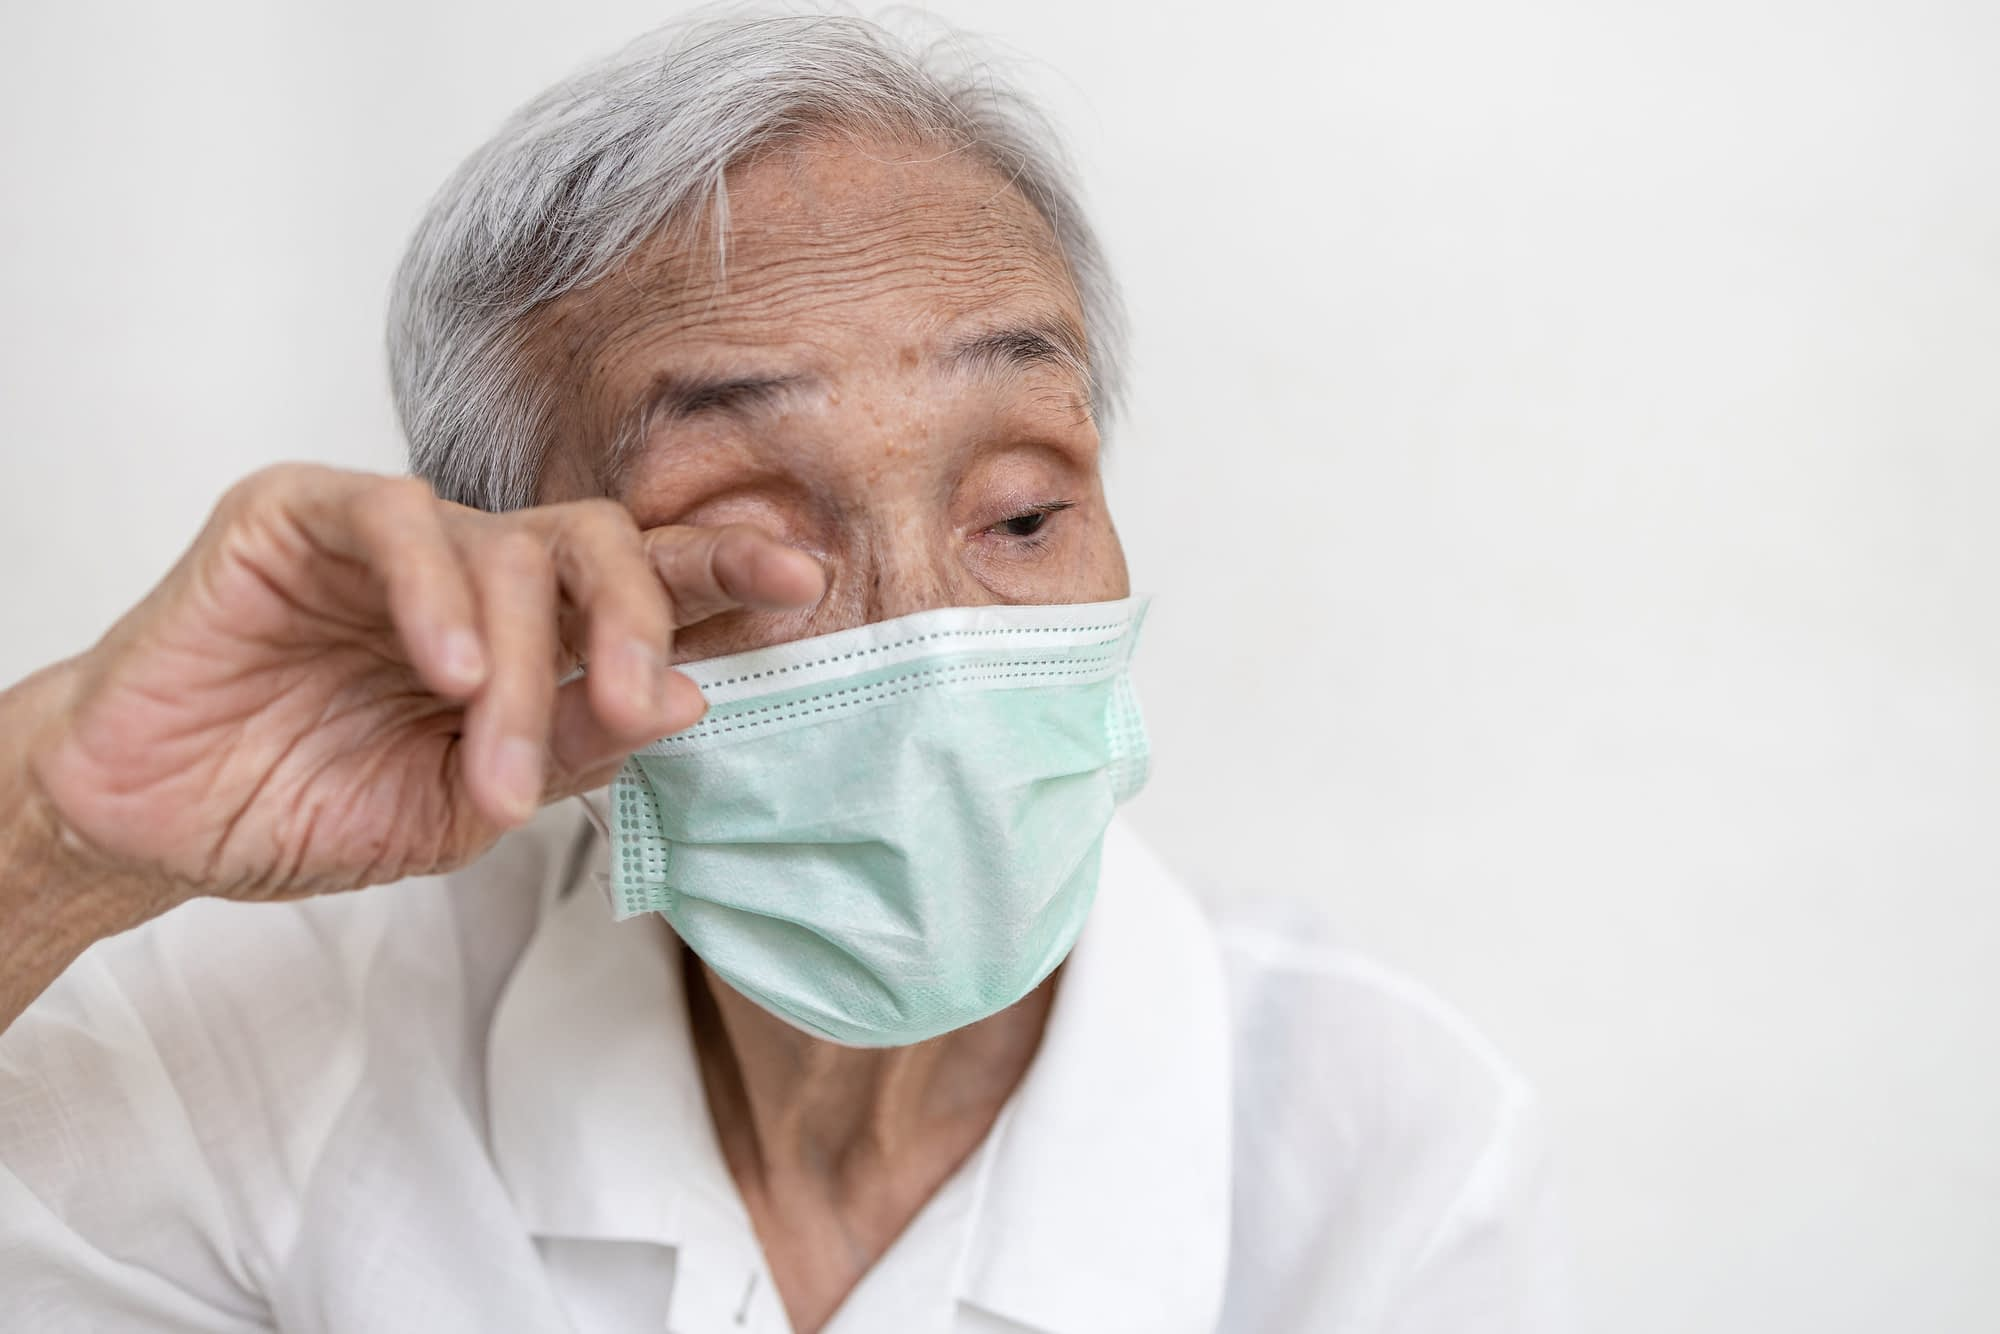 Asian senior woman in medical protective mask rubbing her eyes,Do not touch eyes with her dirty hand,avoid touching to protect form COVID-19,risk of Coronavirus infection,Don't touch face,health care